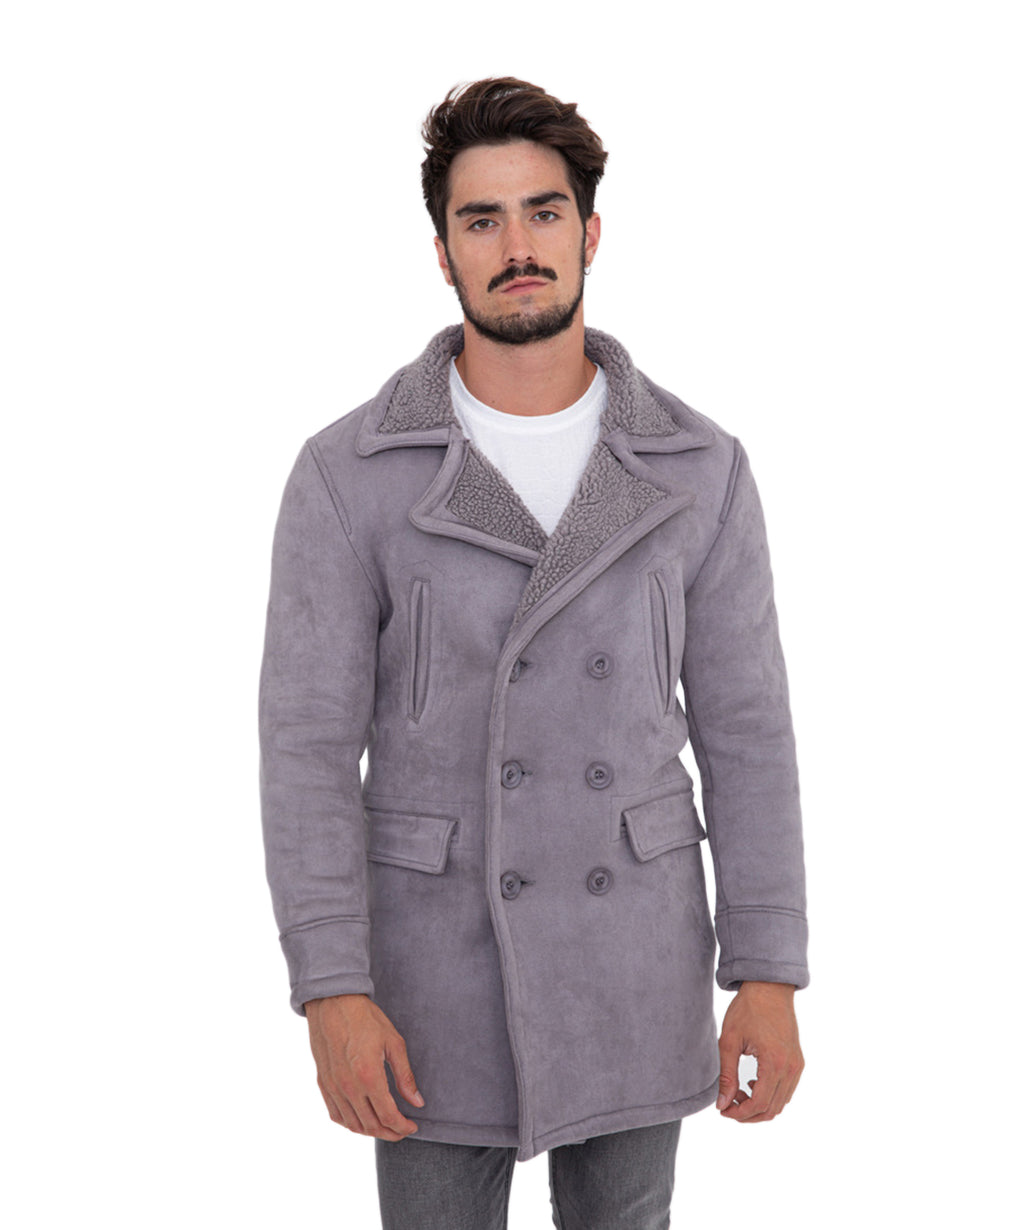 COAT SILVIO GREY - Vaarora